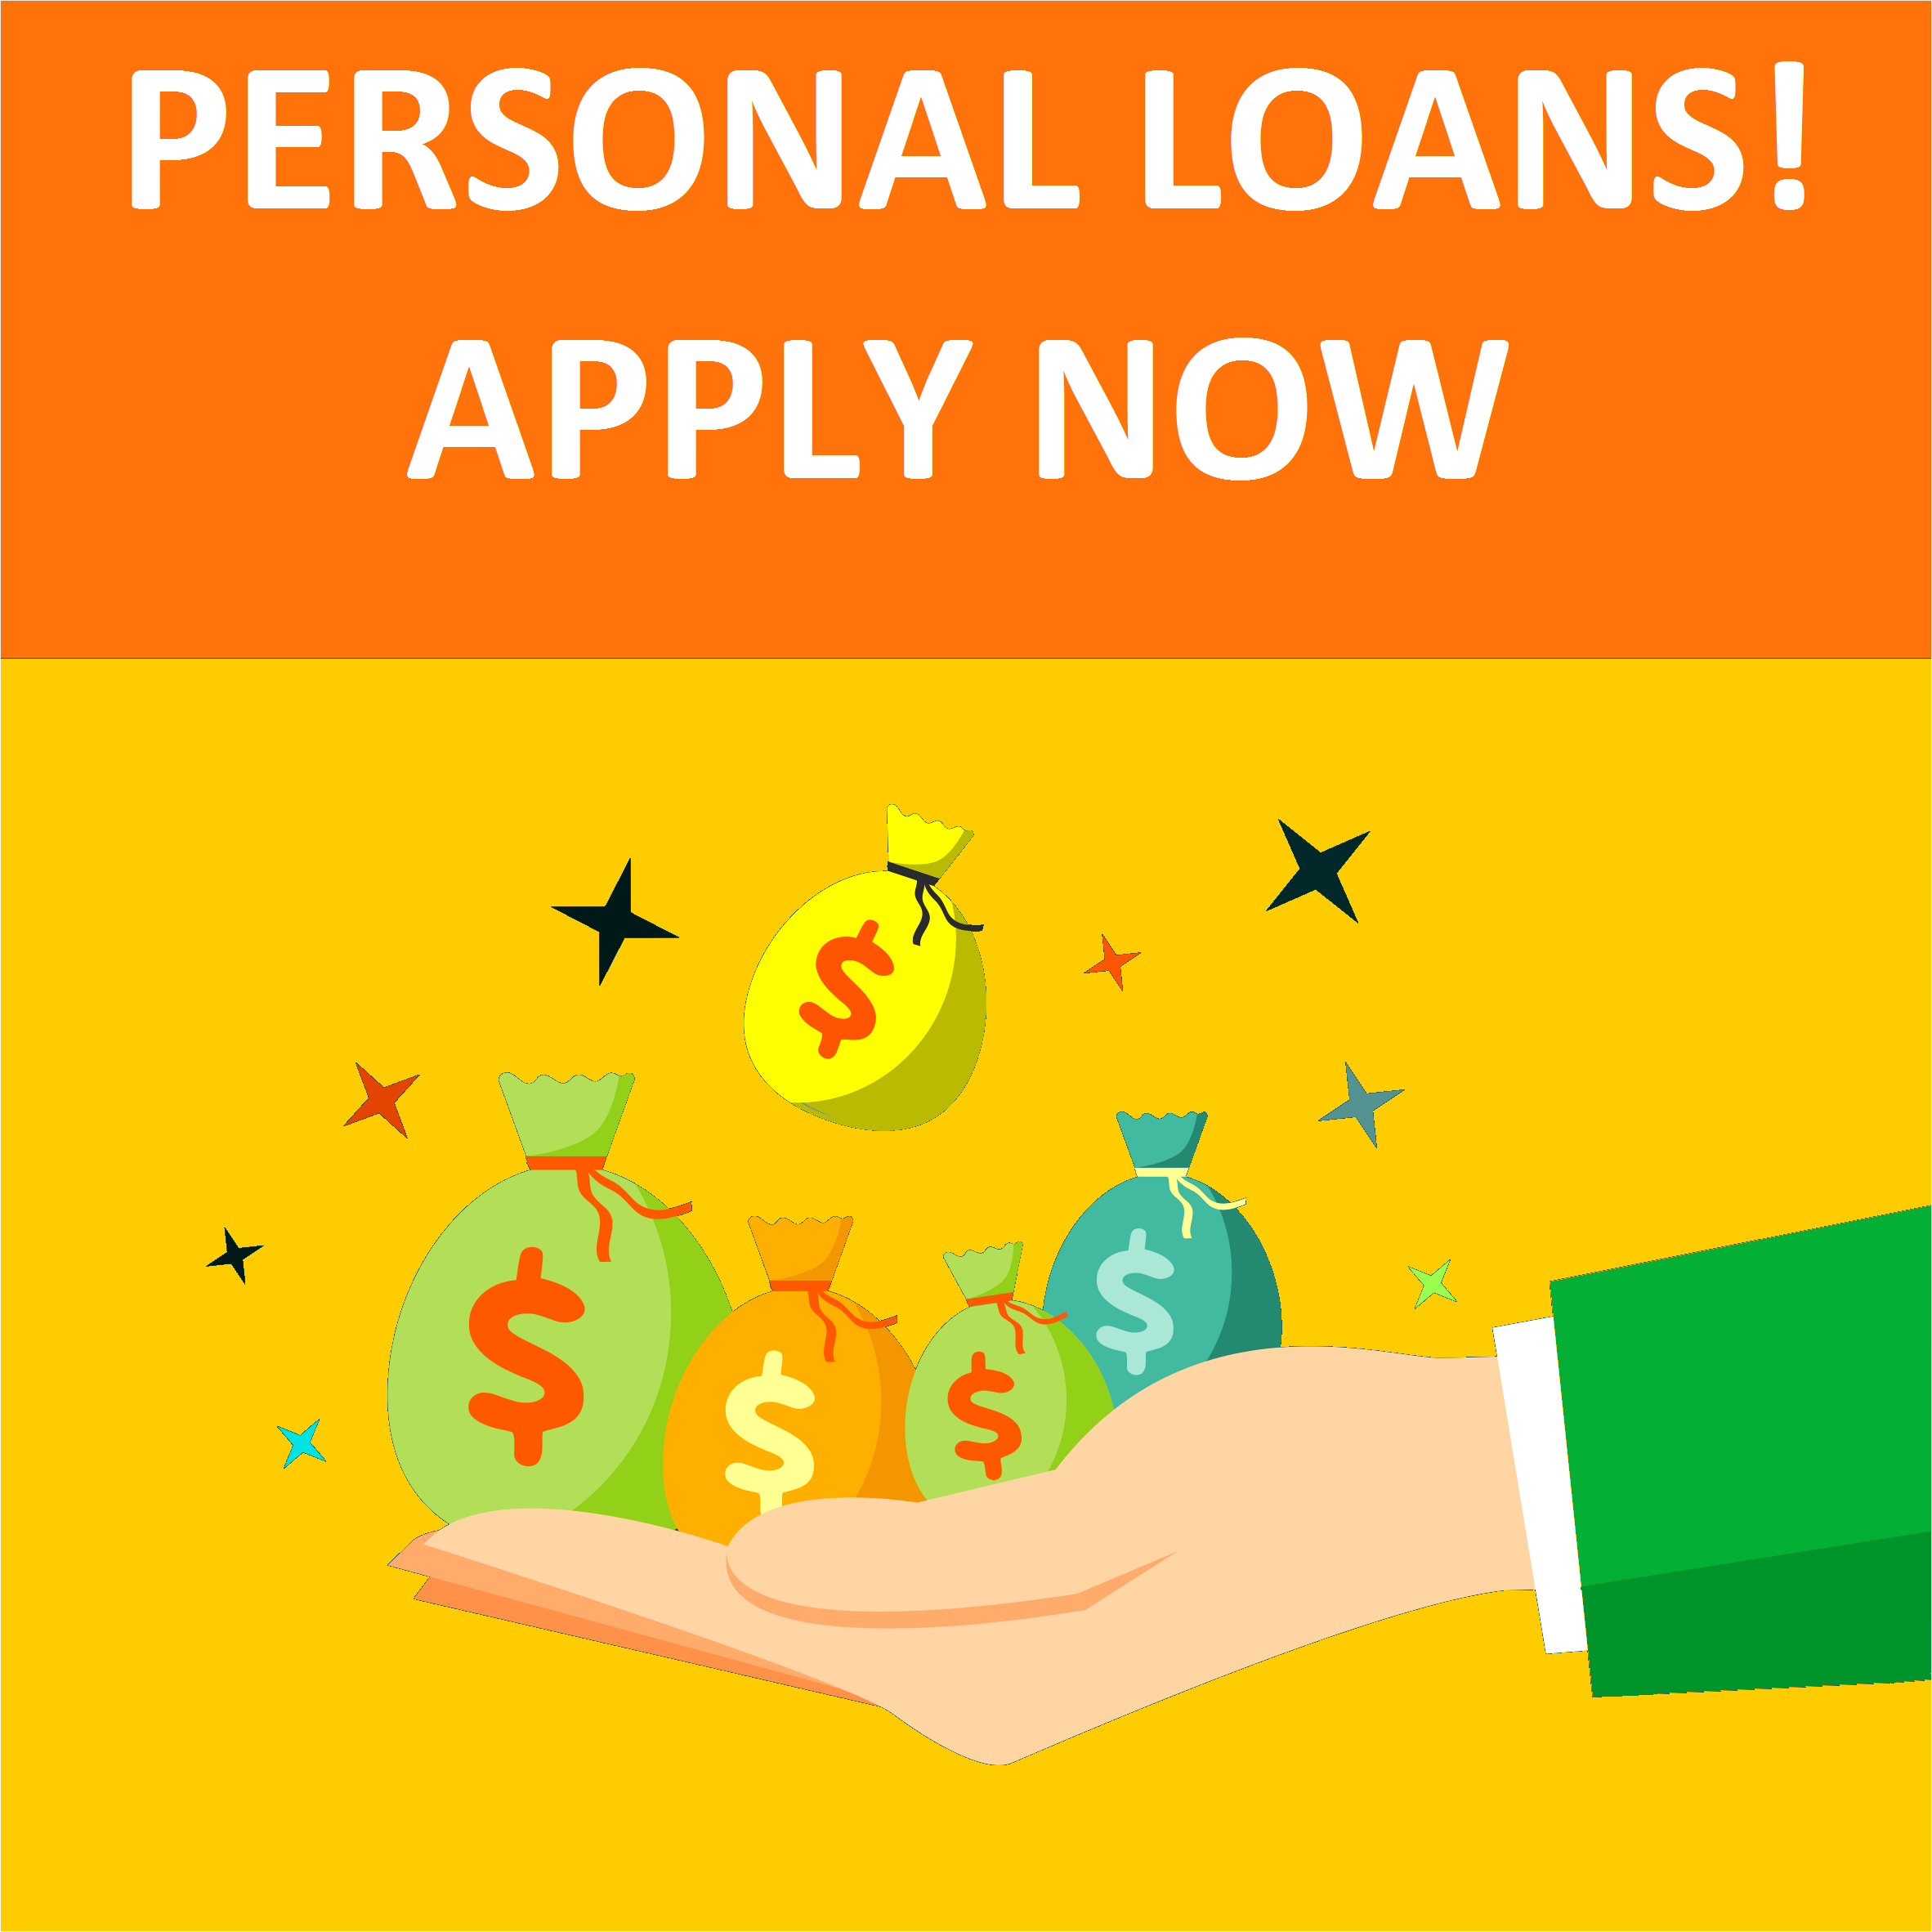 Personal Loans! Apply Now.